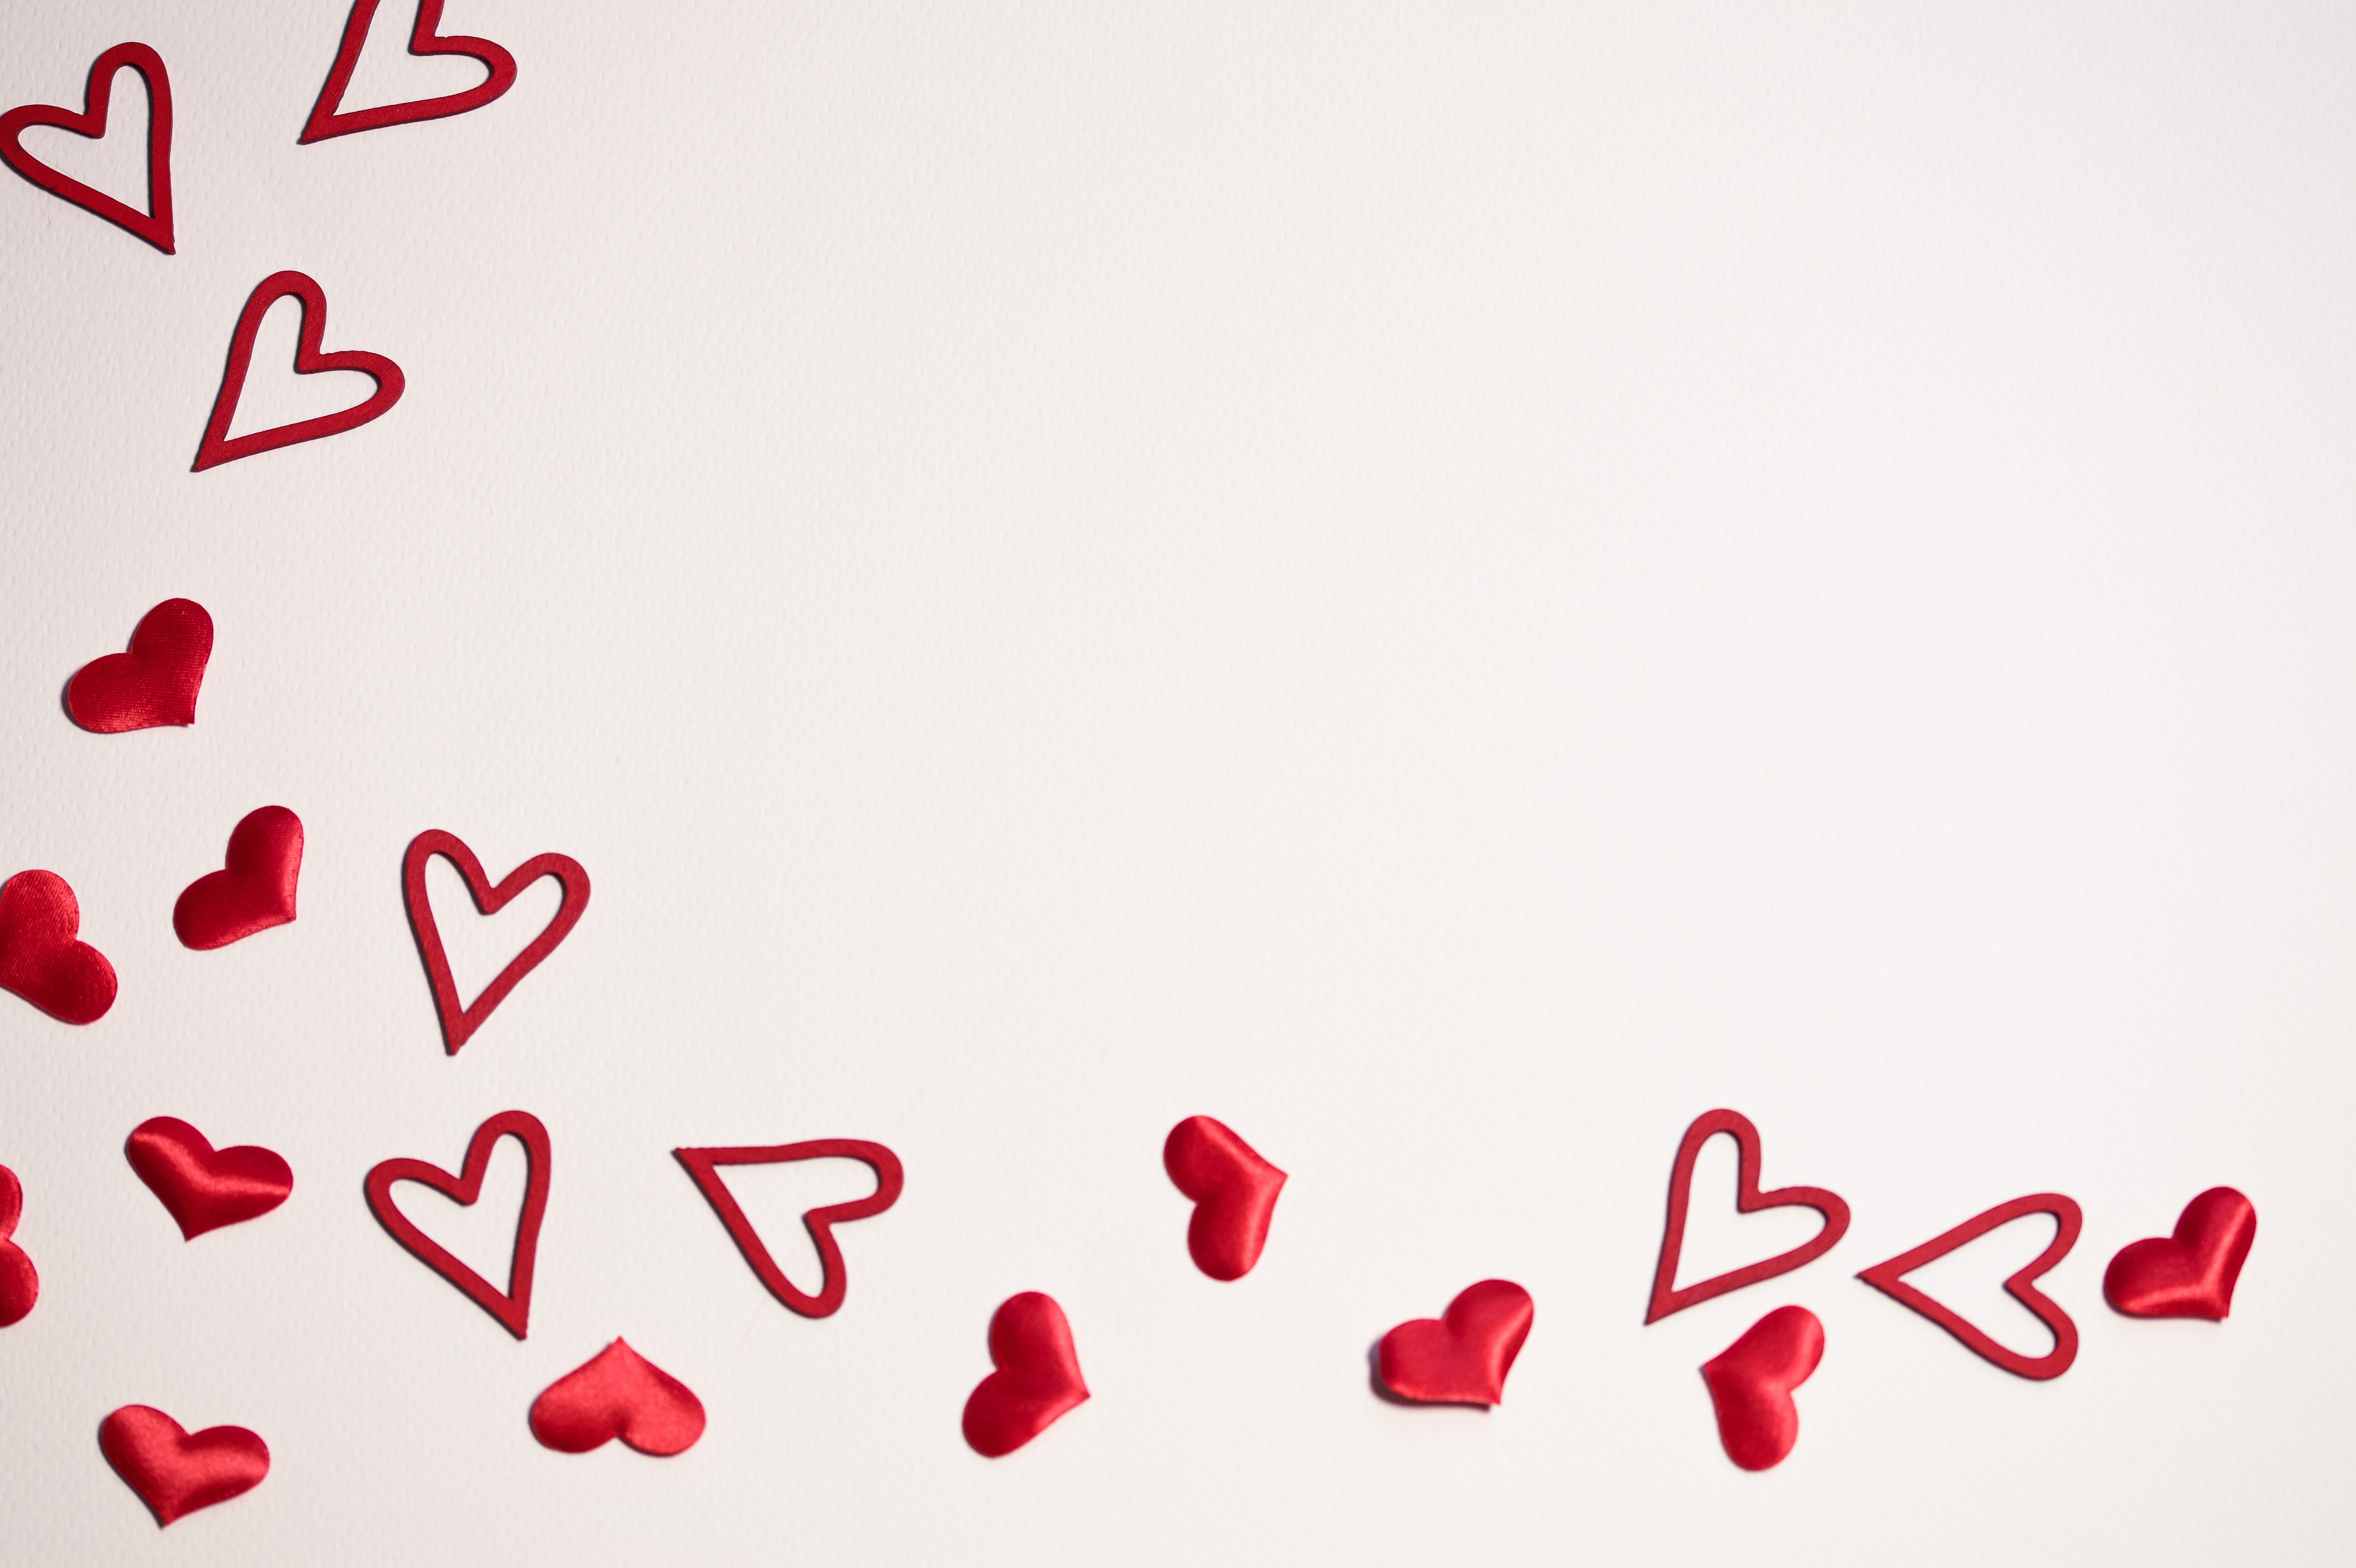 Mini red hearts wallpaper photo